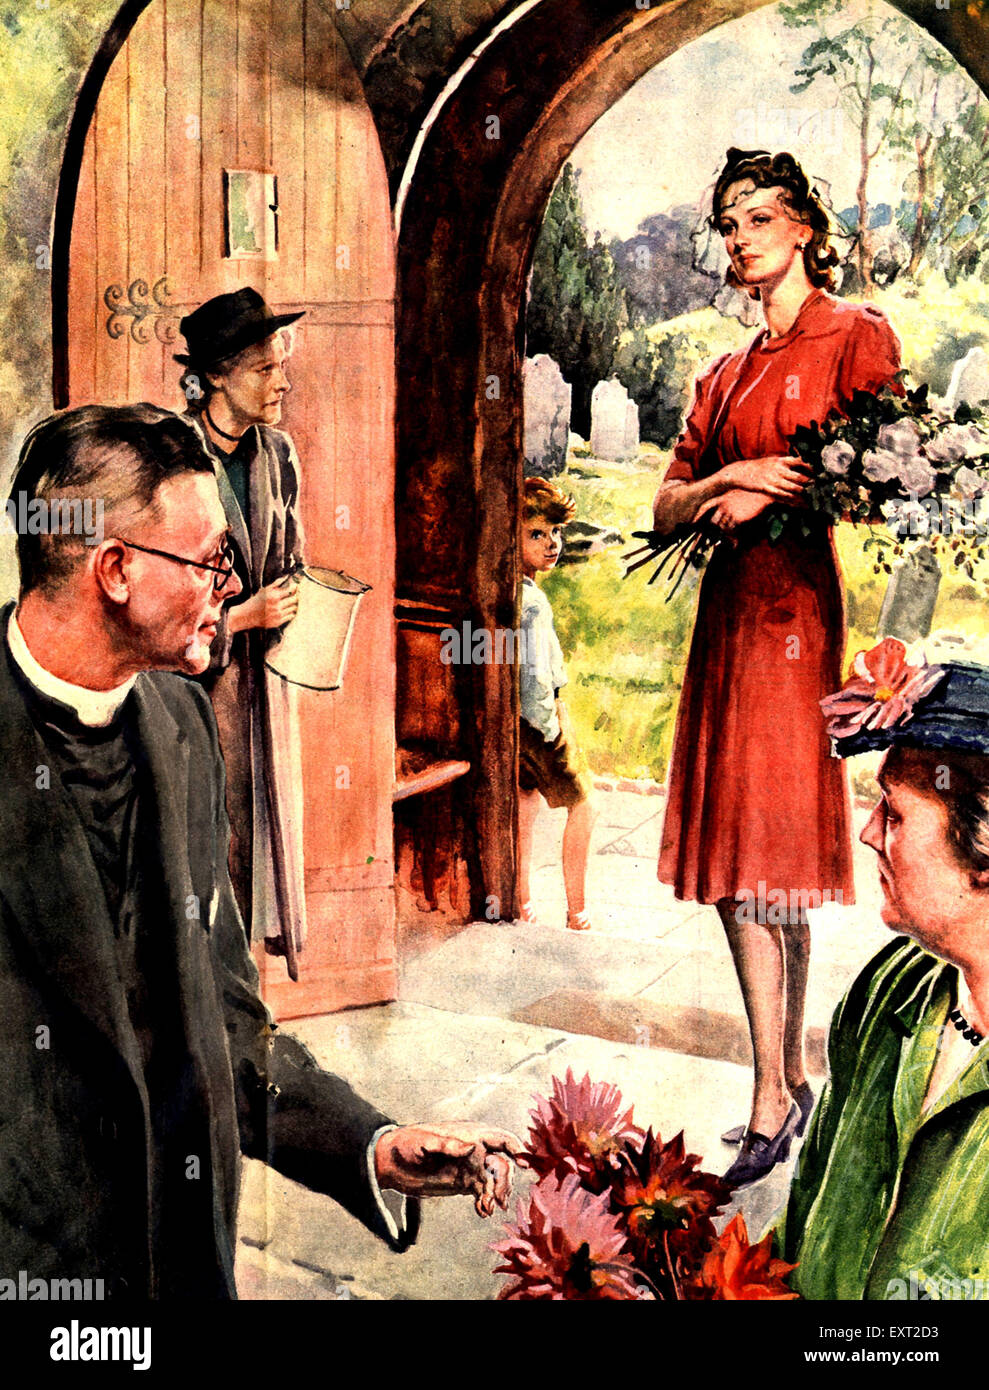 1940s UK Church  illustration Magazine Plate - Stock Image